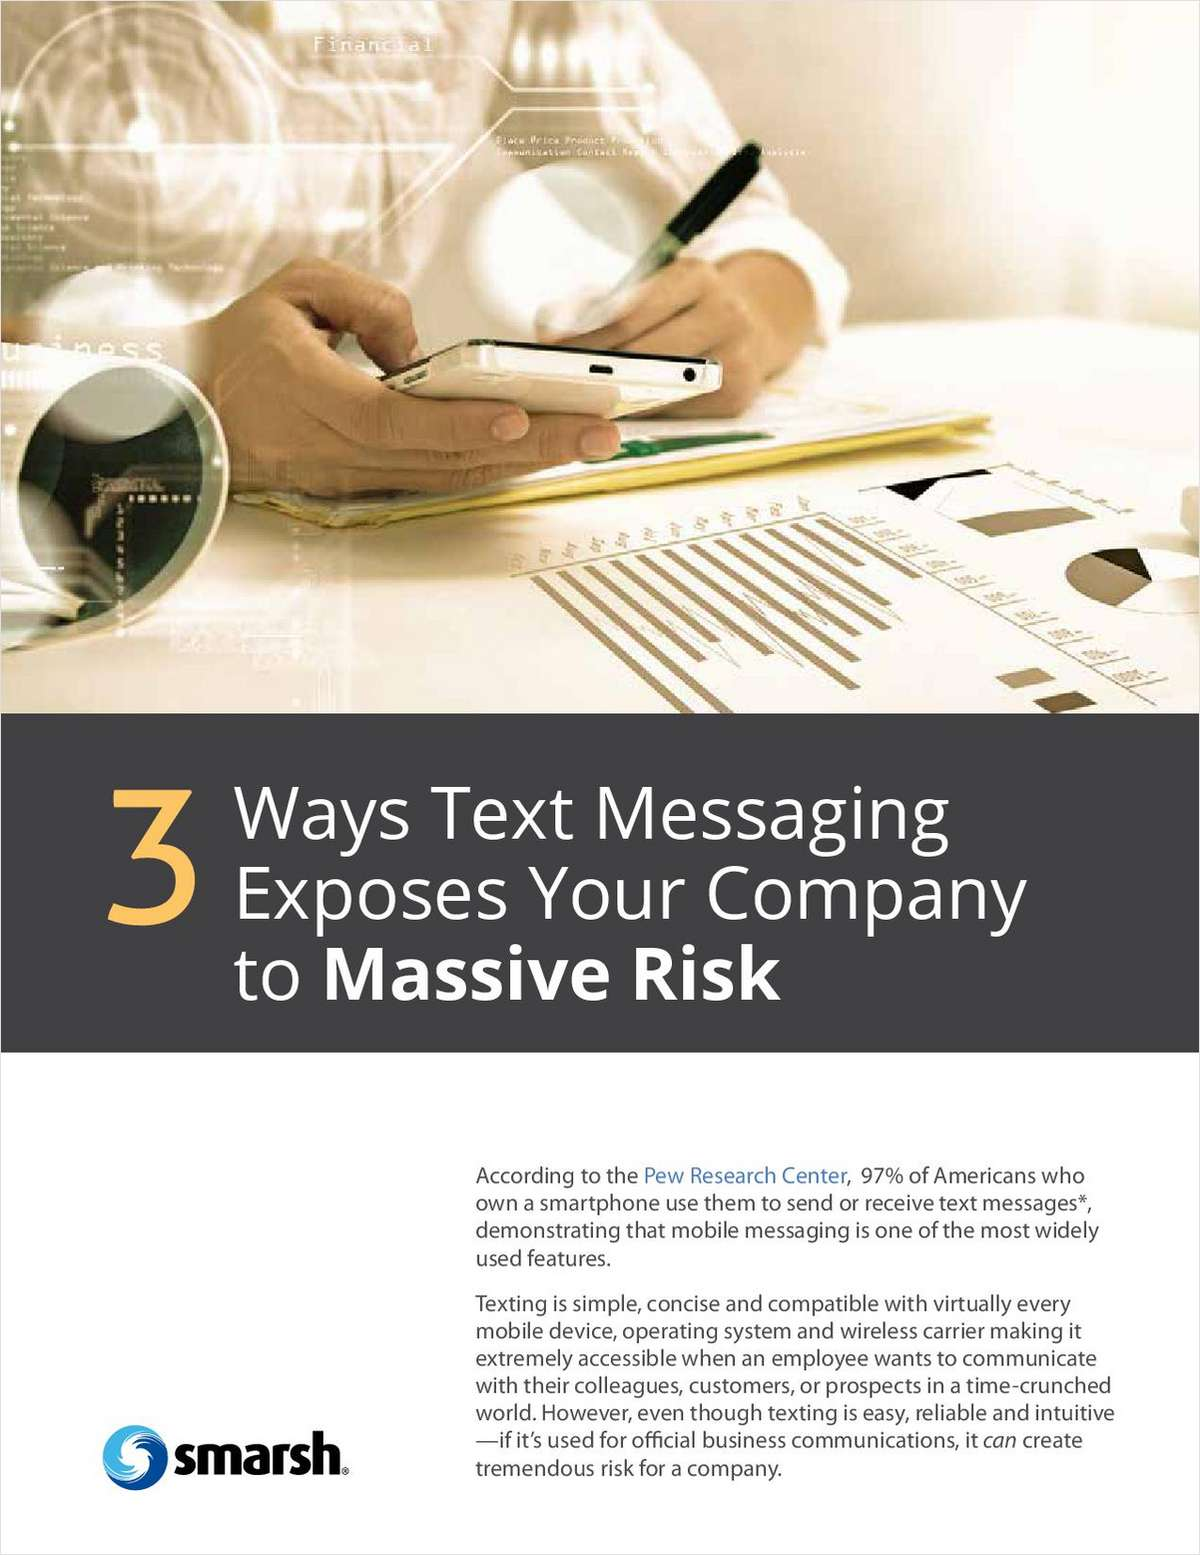 3 Ways Text Messaging Exposes Your Credit Union to Massive Risk